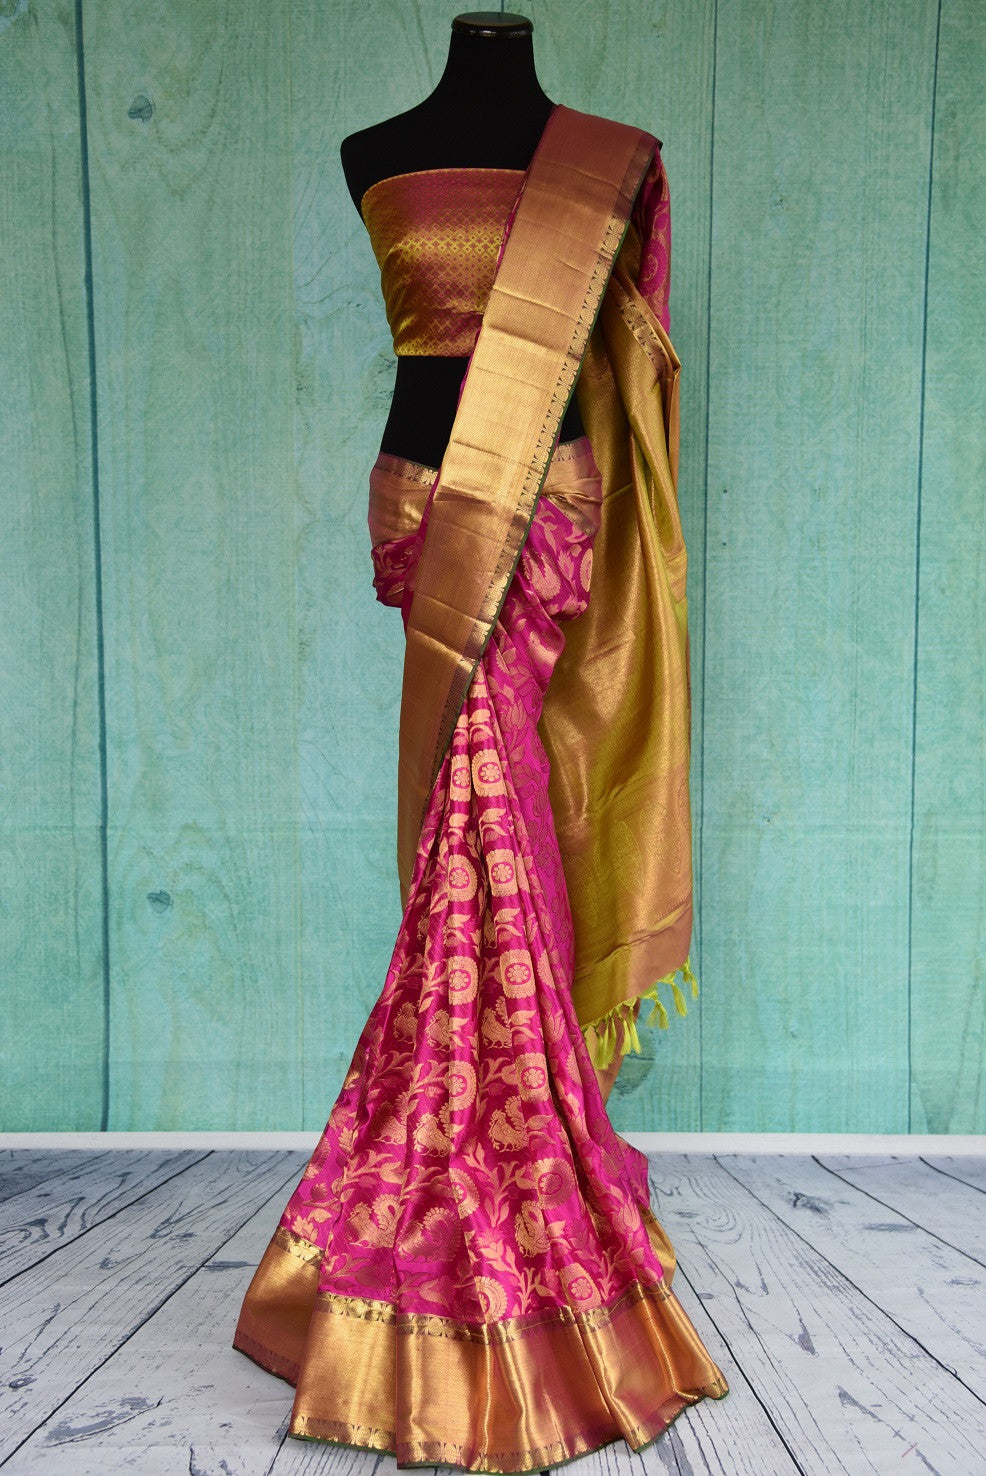 90D416 Striking kanjivaram saree, ideal for Indian weddings and festivals. Buy this pink saree with golden border, blouse and design online at our ethnic wear store in USA - Pure elegance.